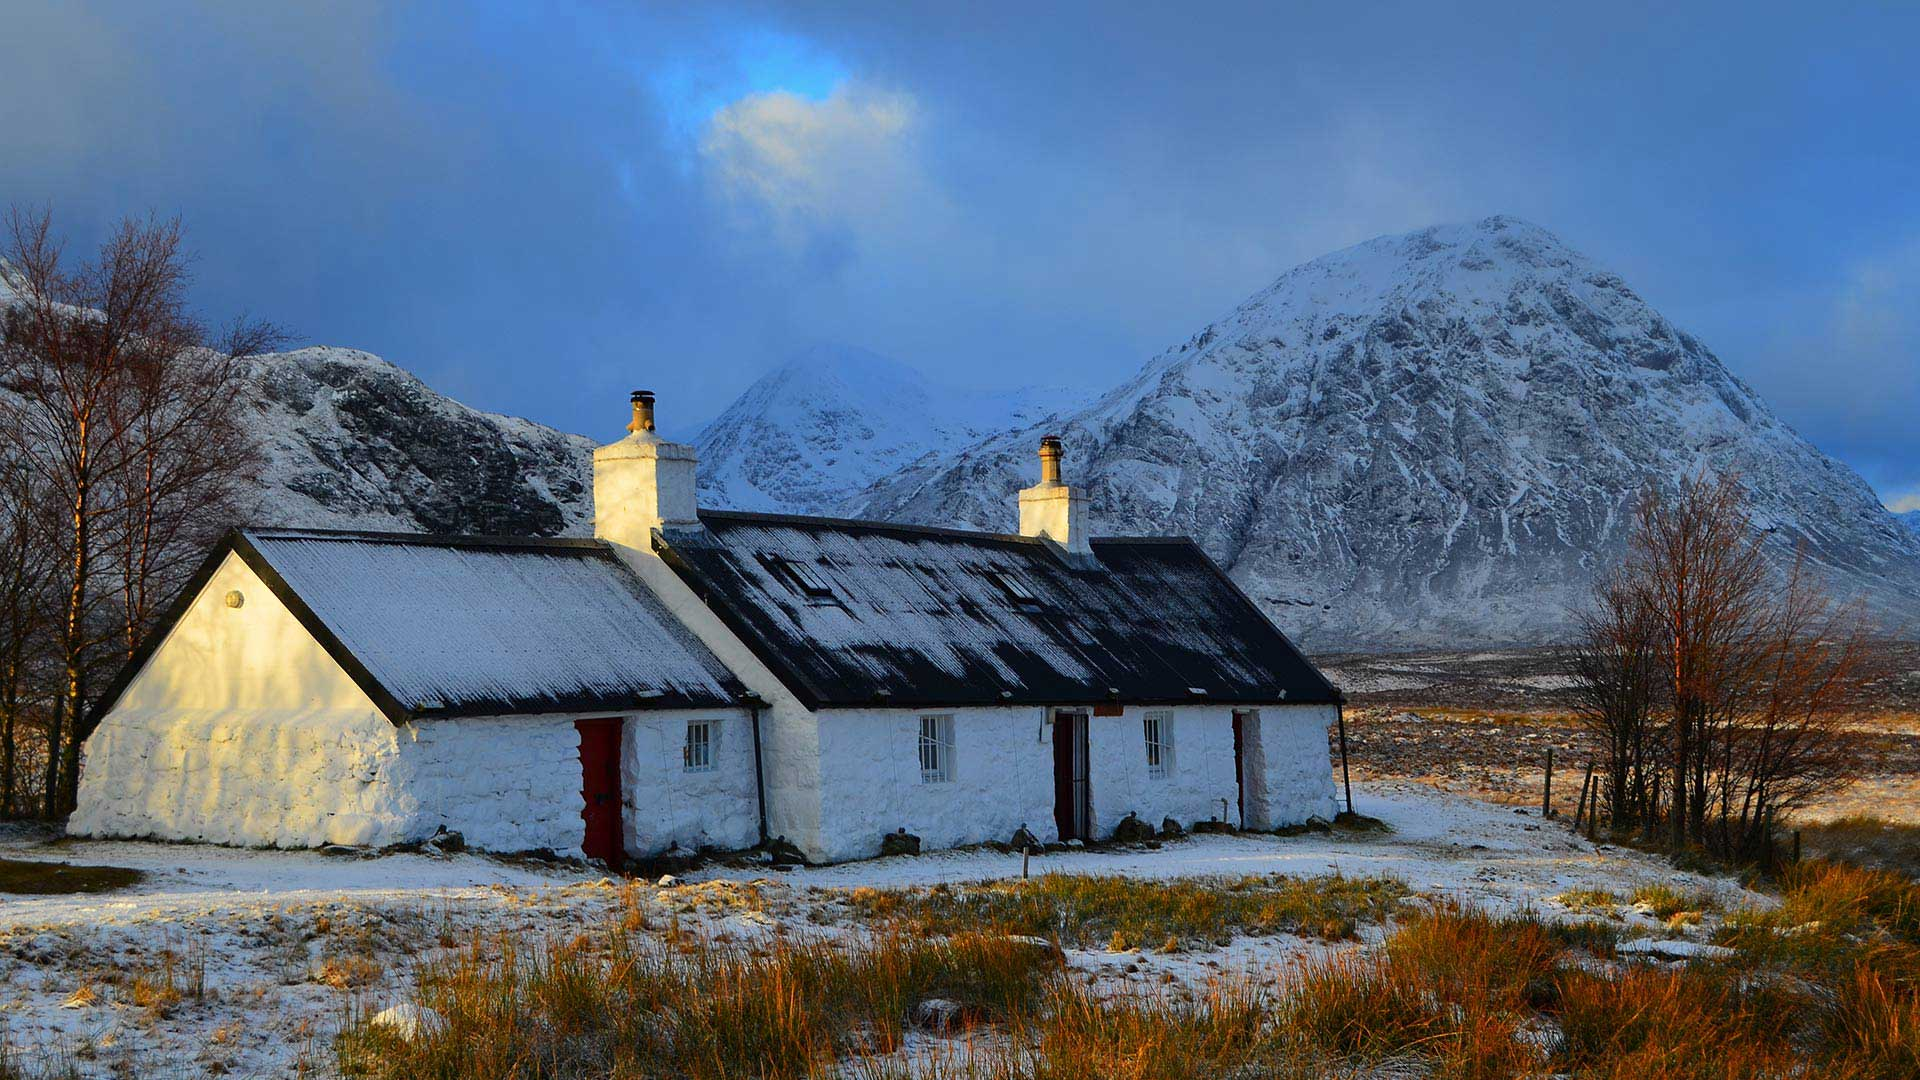 glencoe and house in the snow